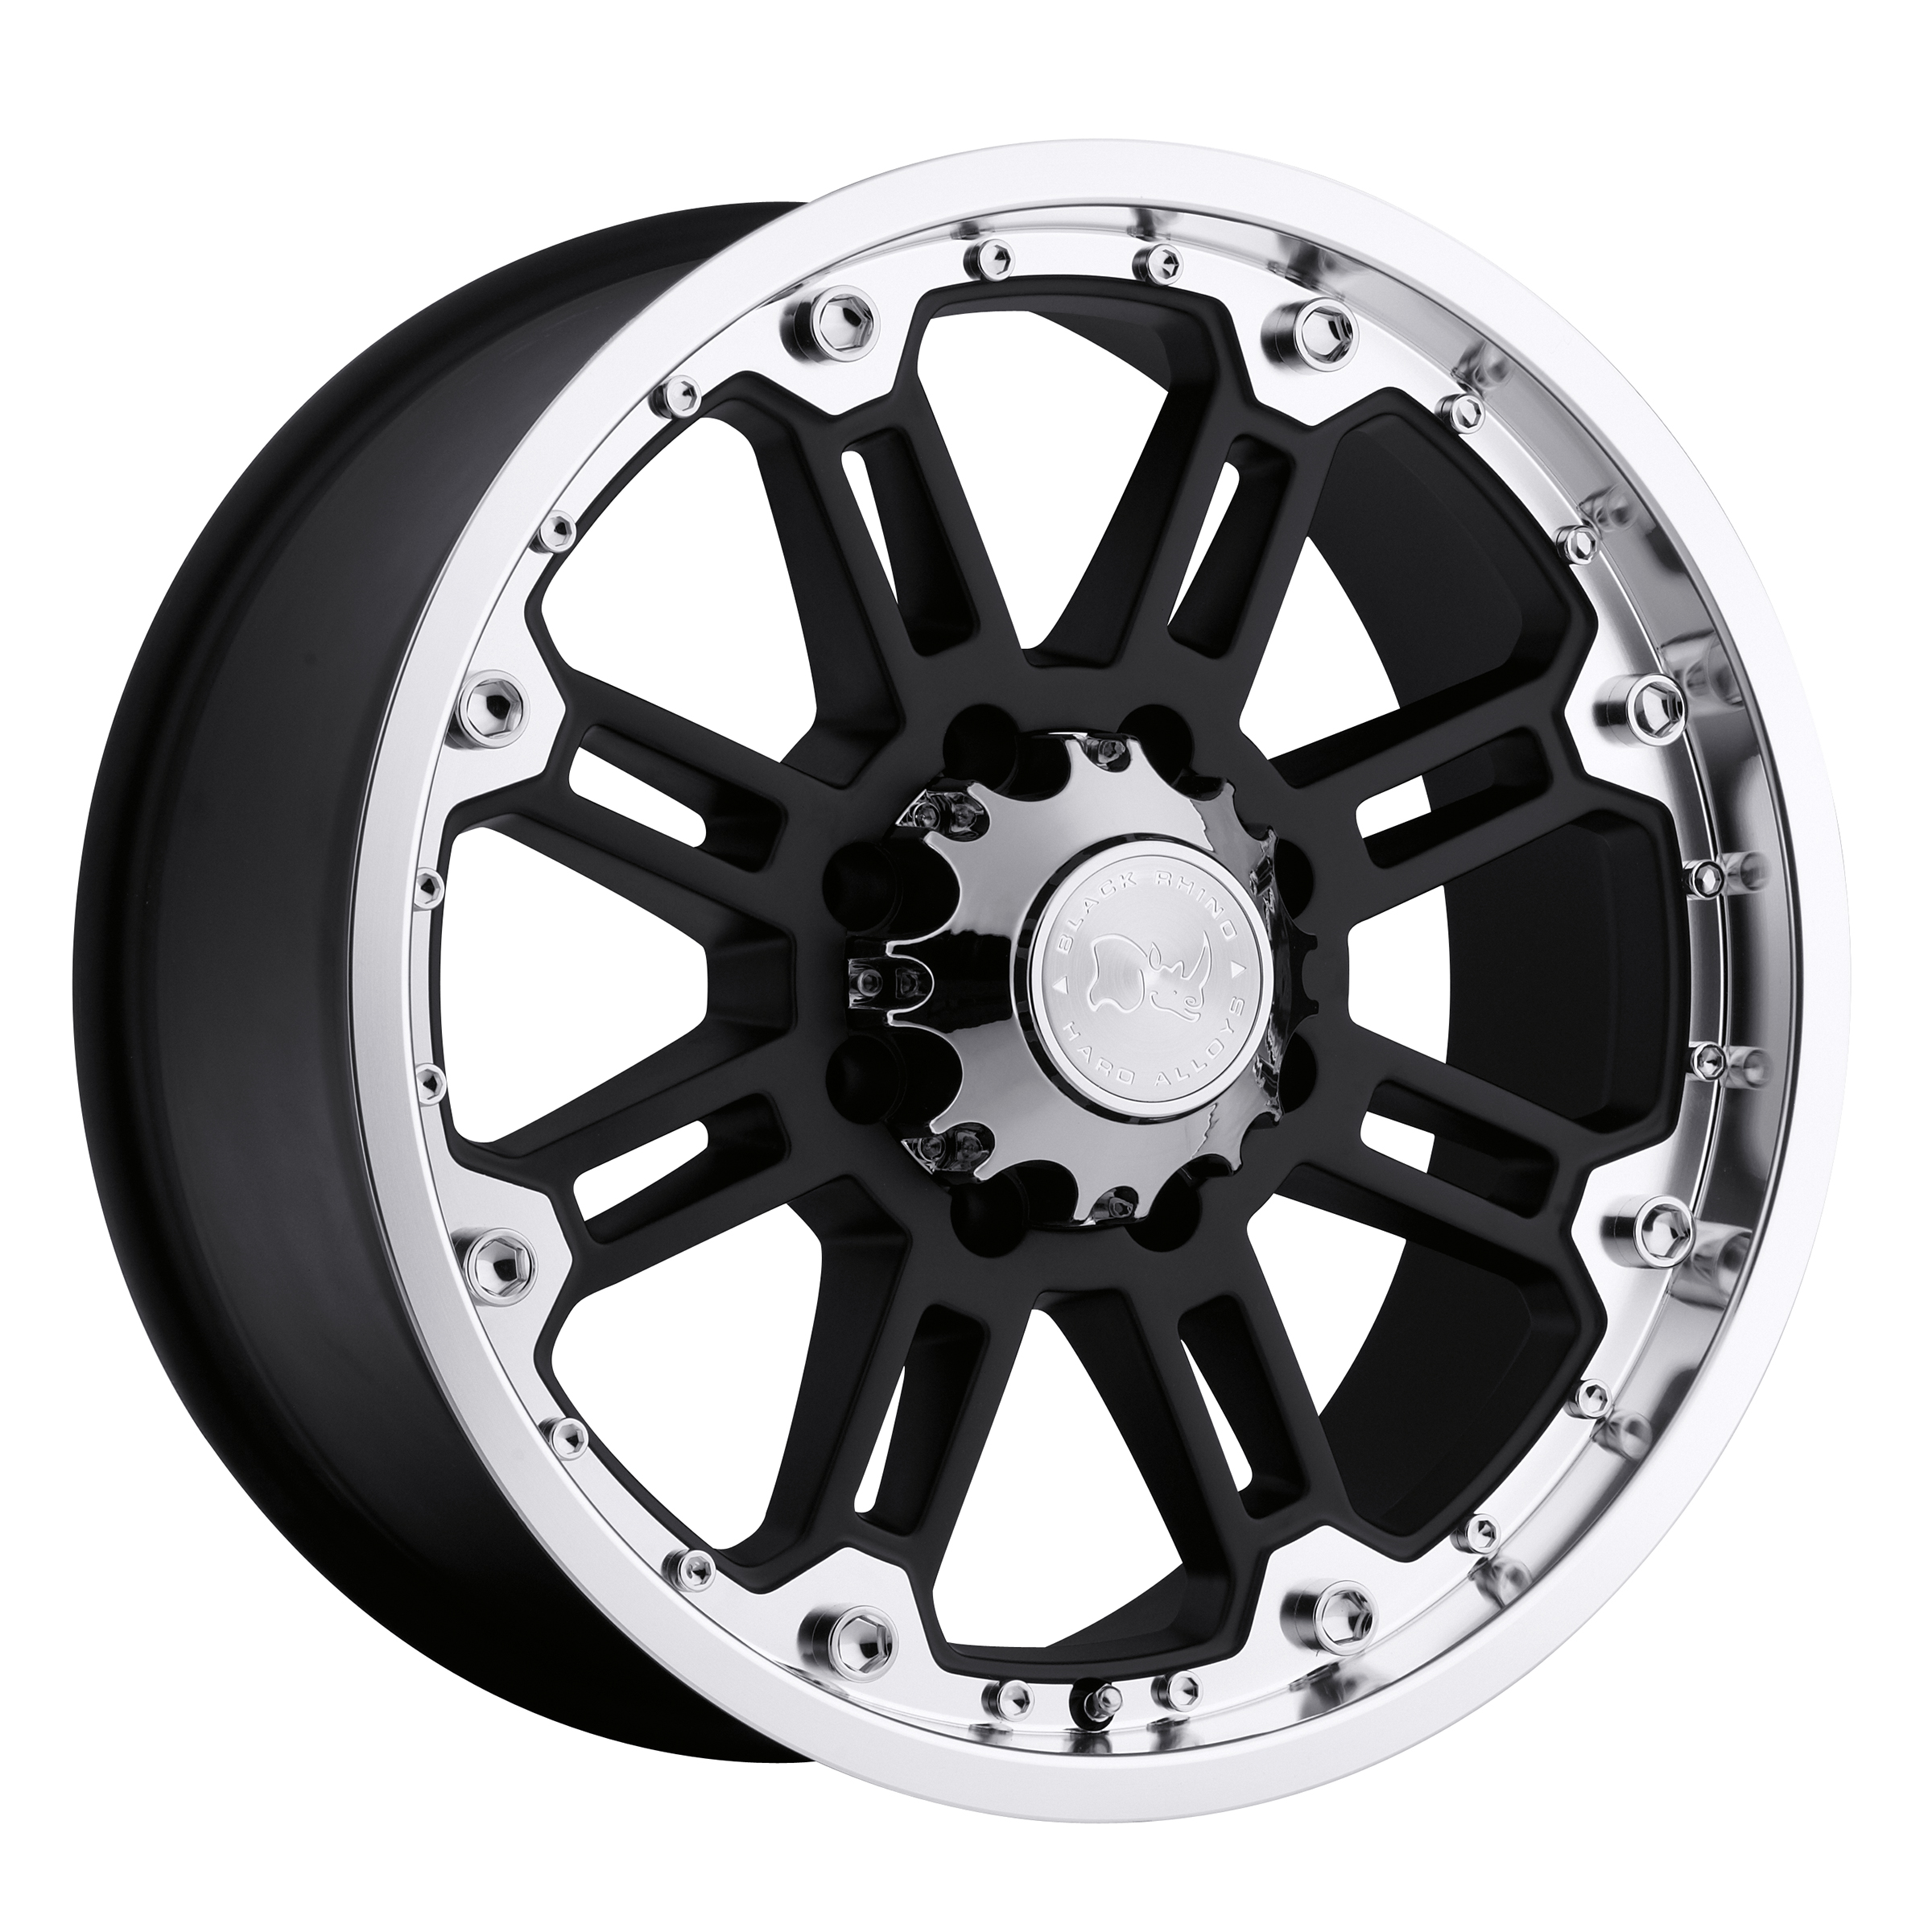 Ford Truck Enthusiasts >> Black Rhino Wheels Now Offers 14 Models Engineered for ...